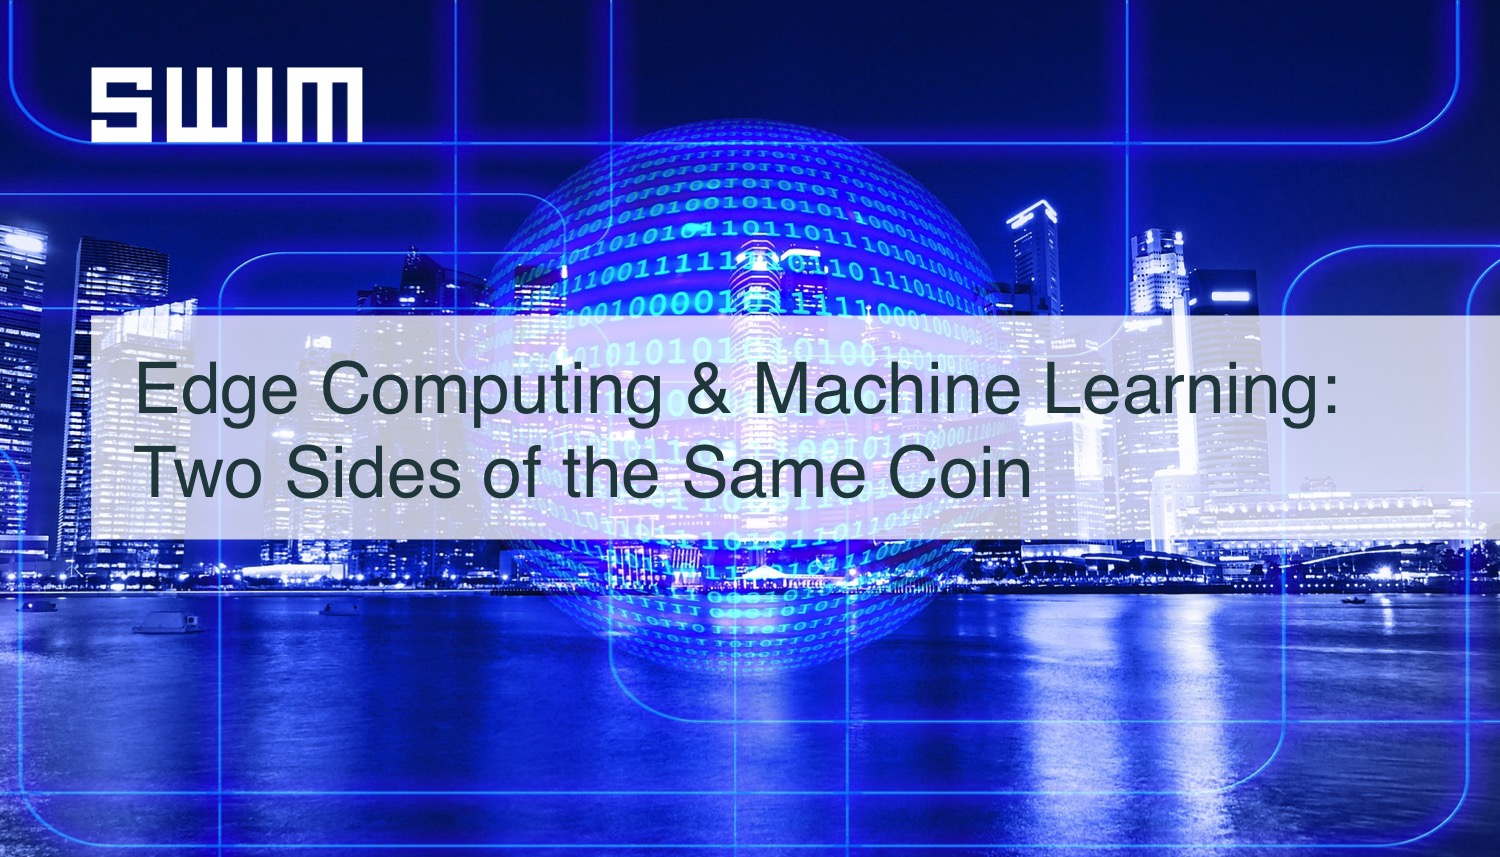 Edge Computing and Machine Learning: Two Sides of the Same Coin | Swim Inc.